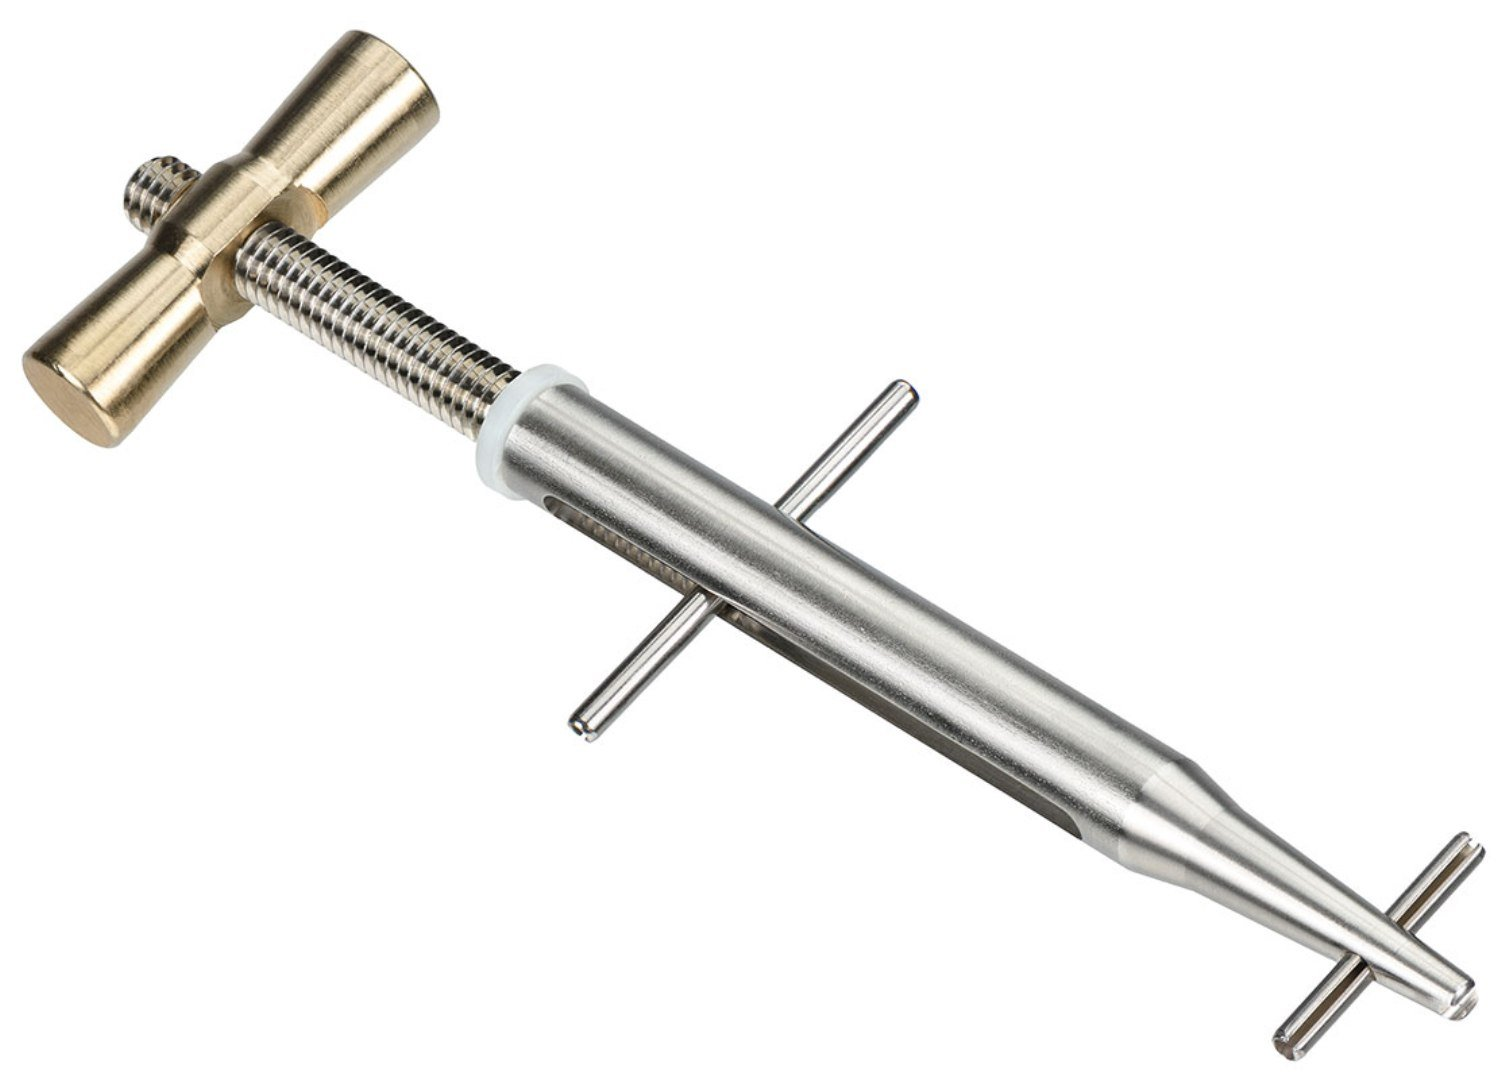 Clamptite - CLT01 - Clamptite - 4 3/4 Stainless Steel Tool w/ Aluminum Bronze T-Bar Nut by Clamptite